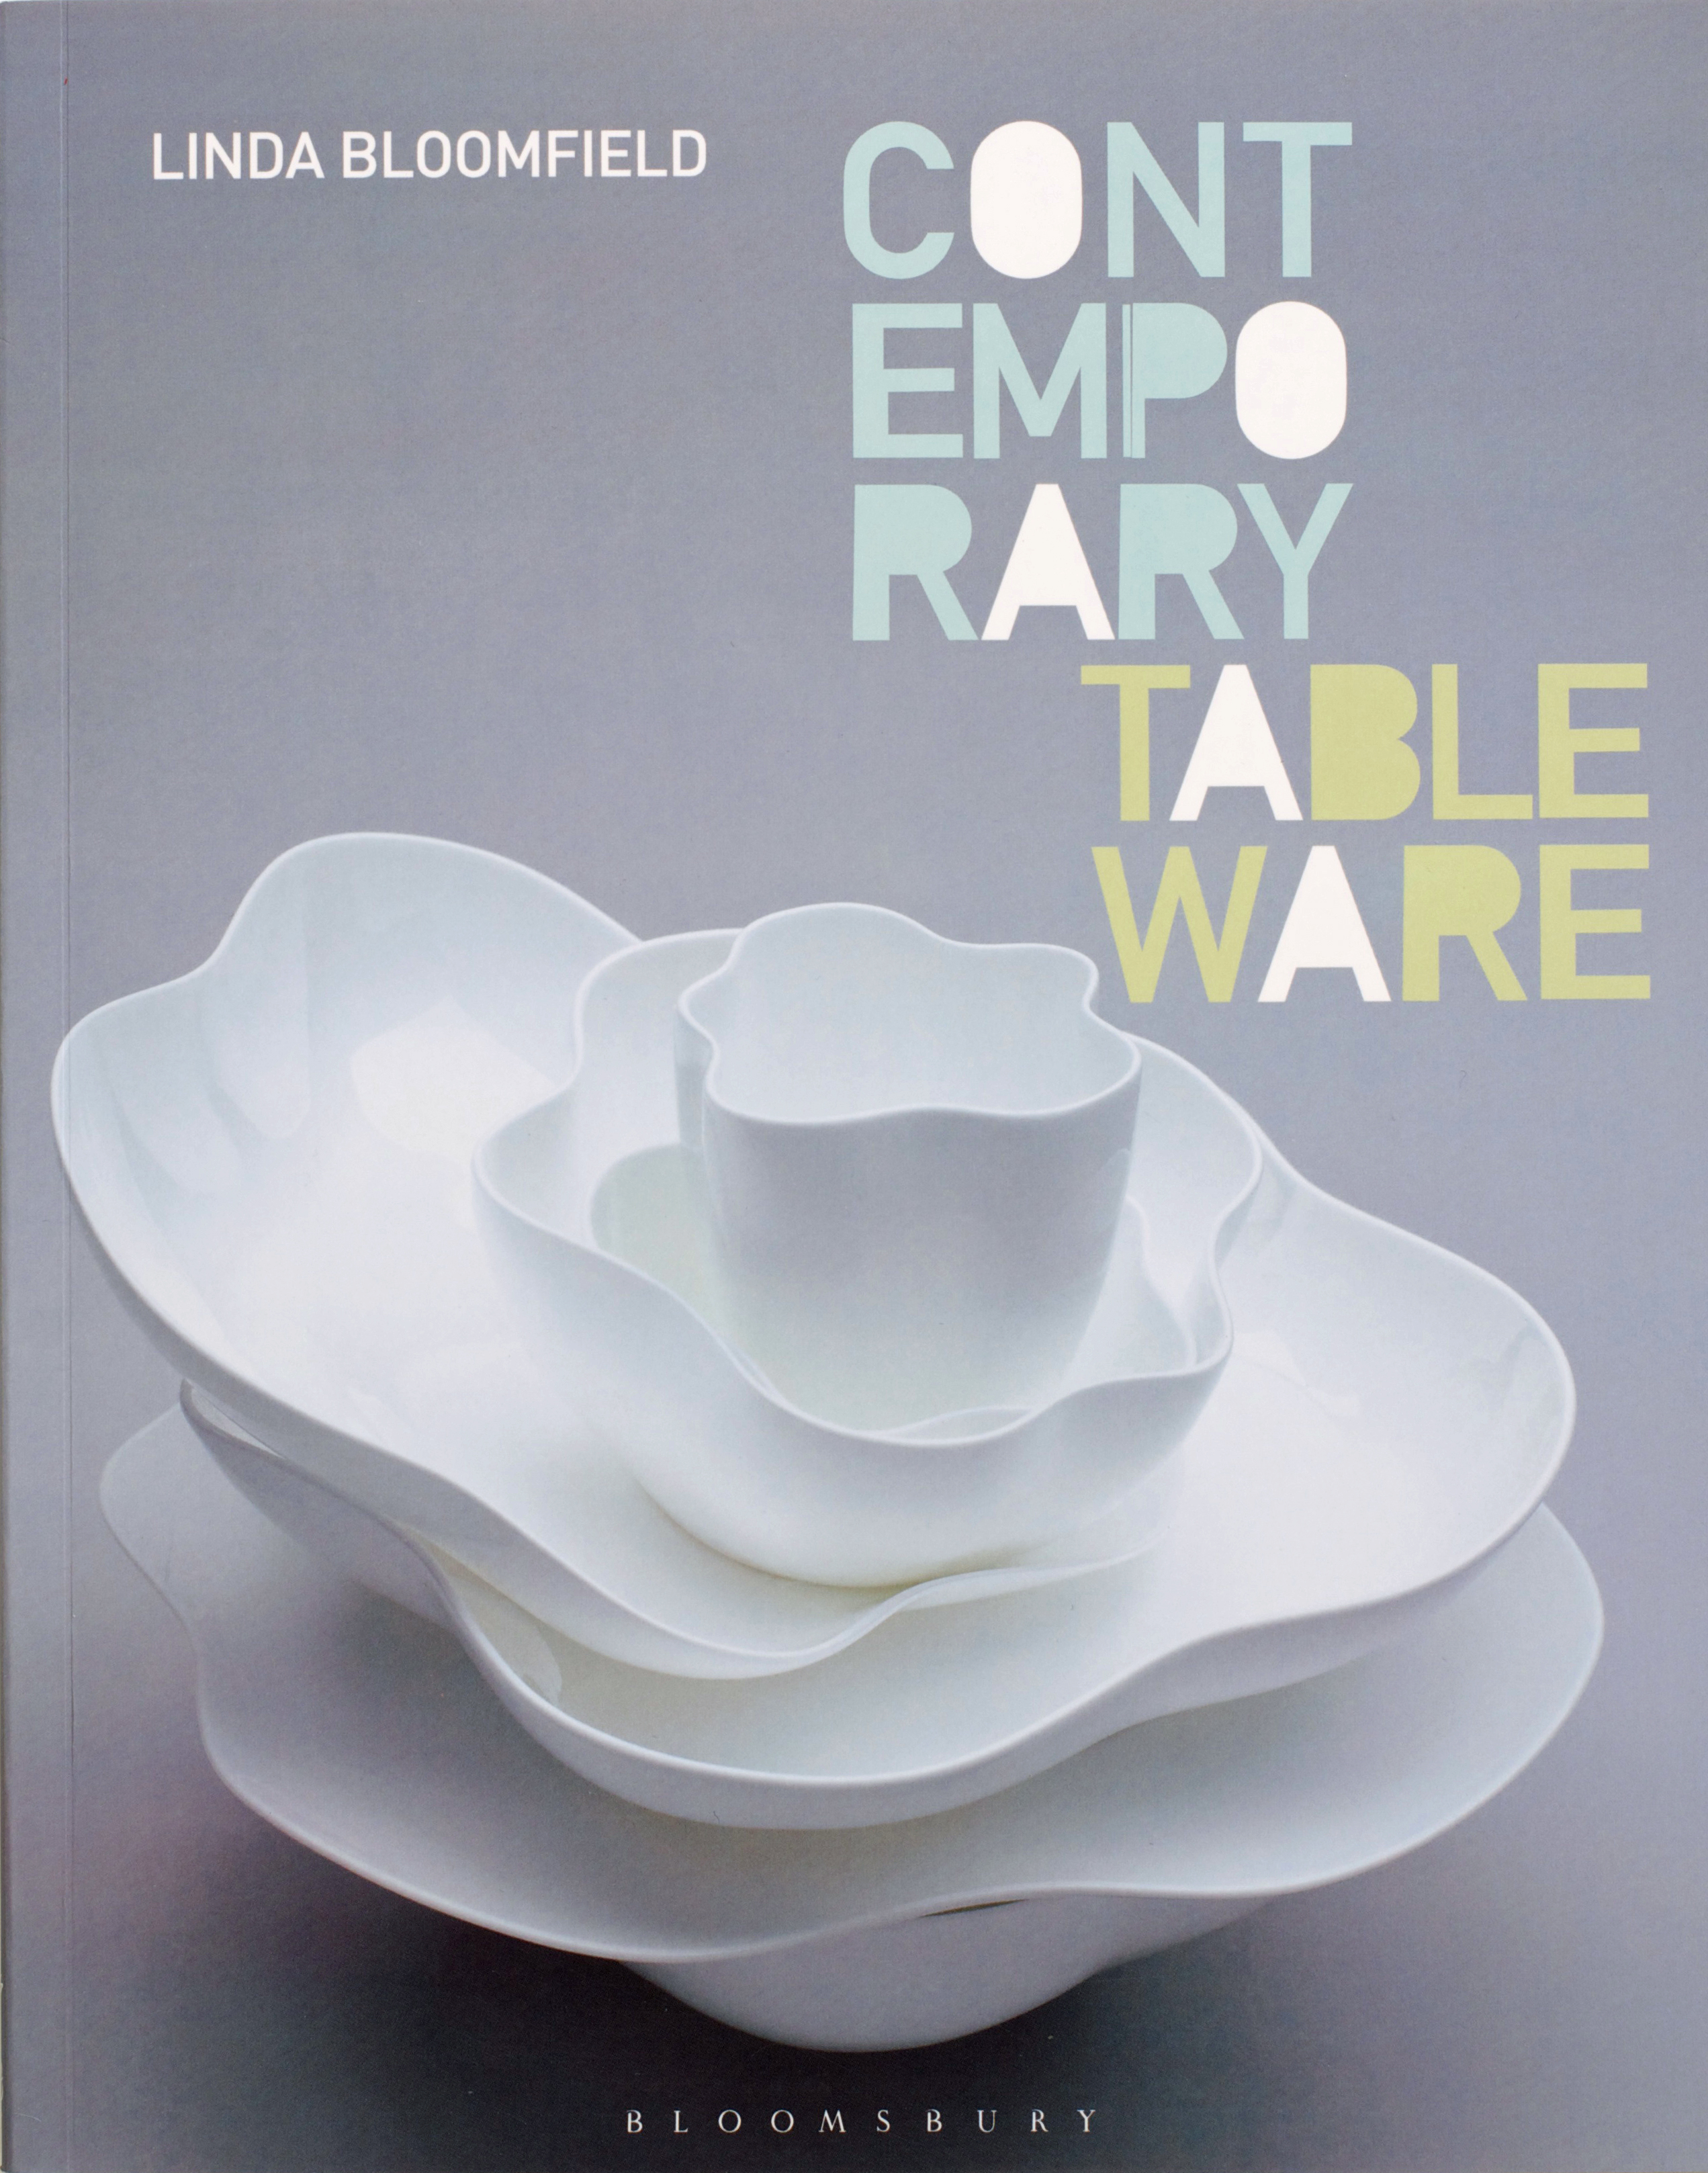 Contemporary Tableware by Linda Bloomfield